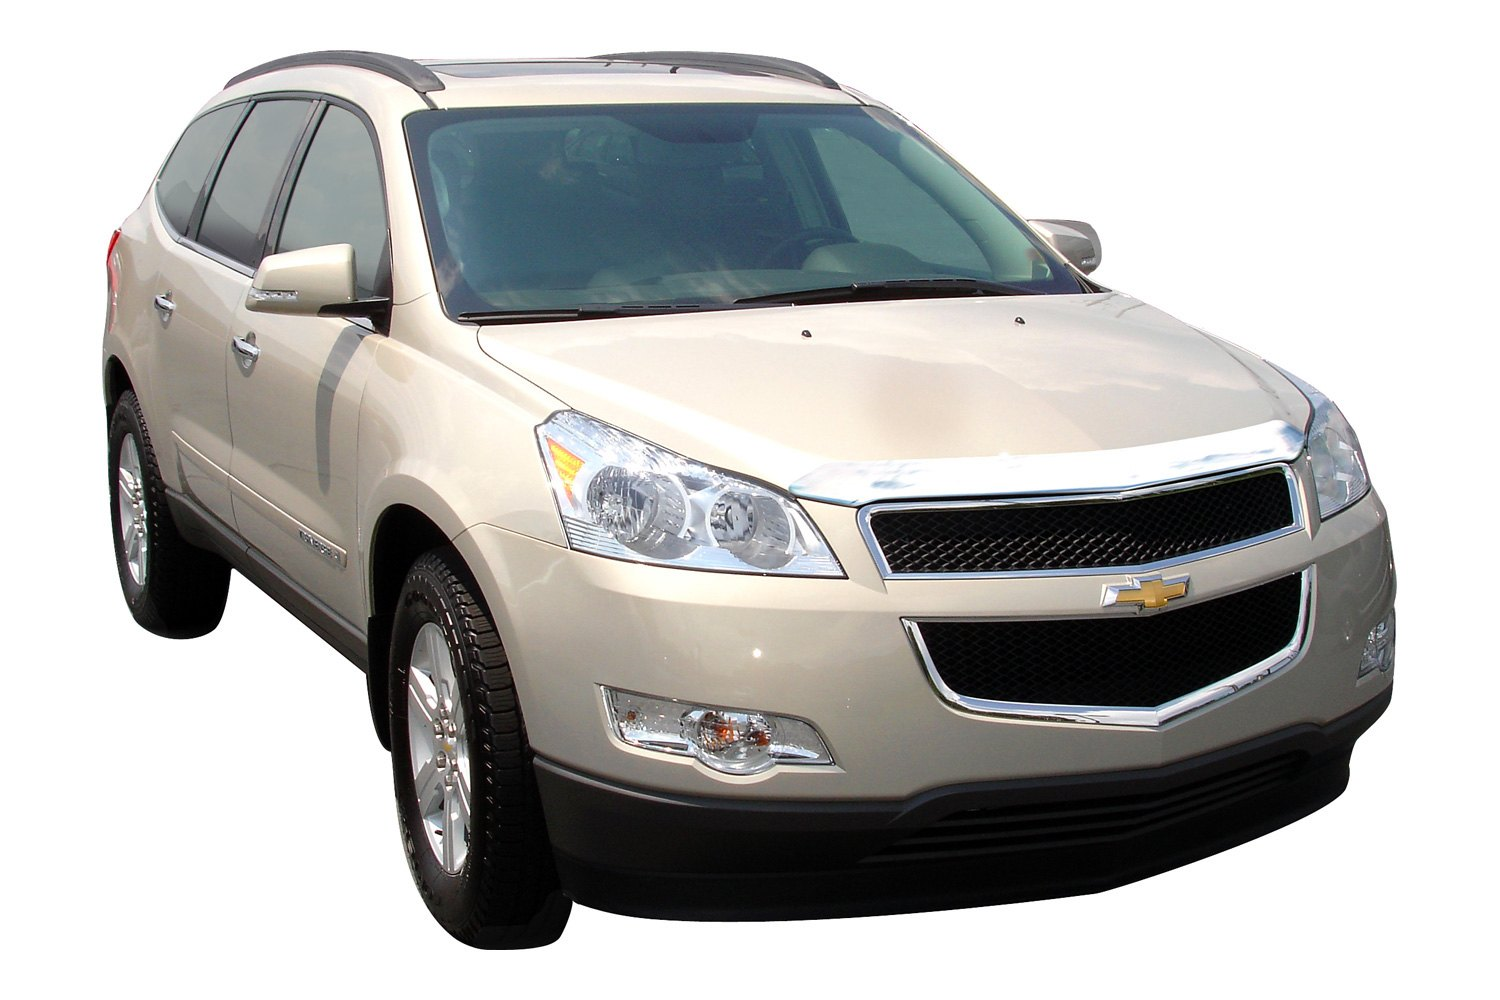 Chevrolet Volt Dr Hb Trunk L together with Chevrolet Malibu Front Beige In Front Of Trees as well Gm Chevrolet Traverse Door Panel Removal Guide additionally Oncar together with Chevrolet Traverse Interiors. on 2012 chevy traverse